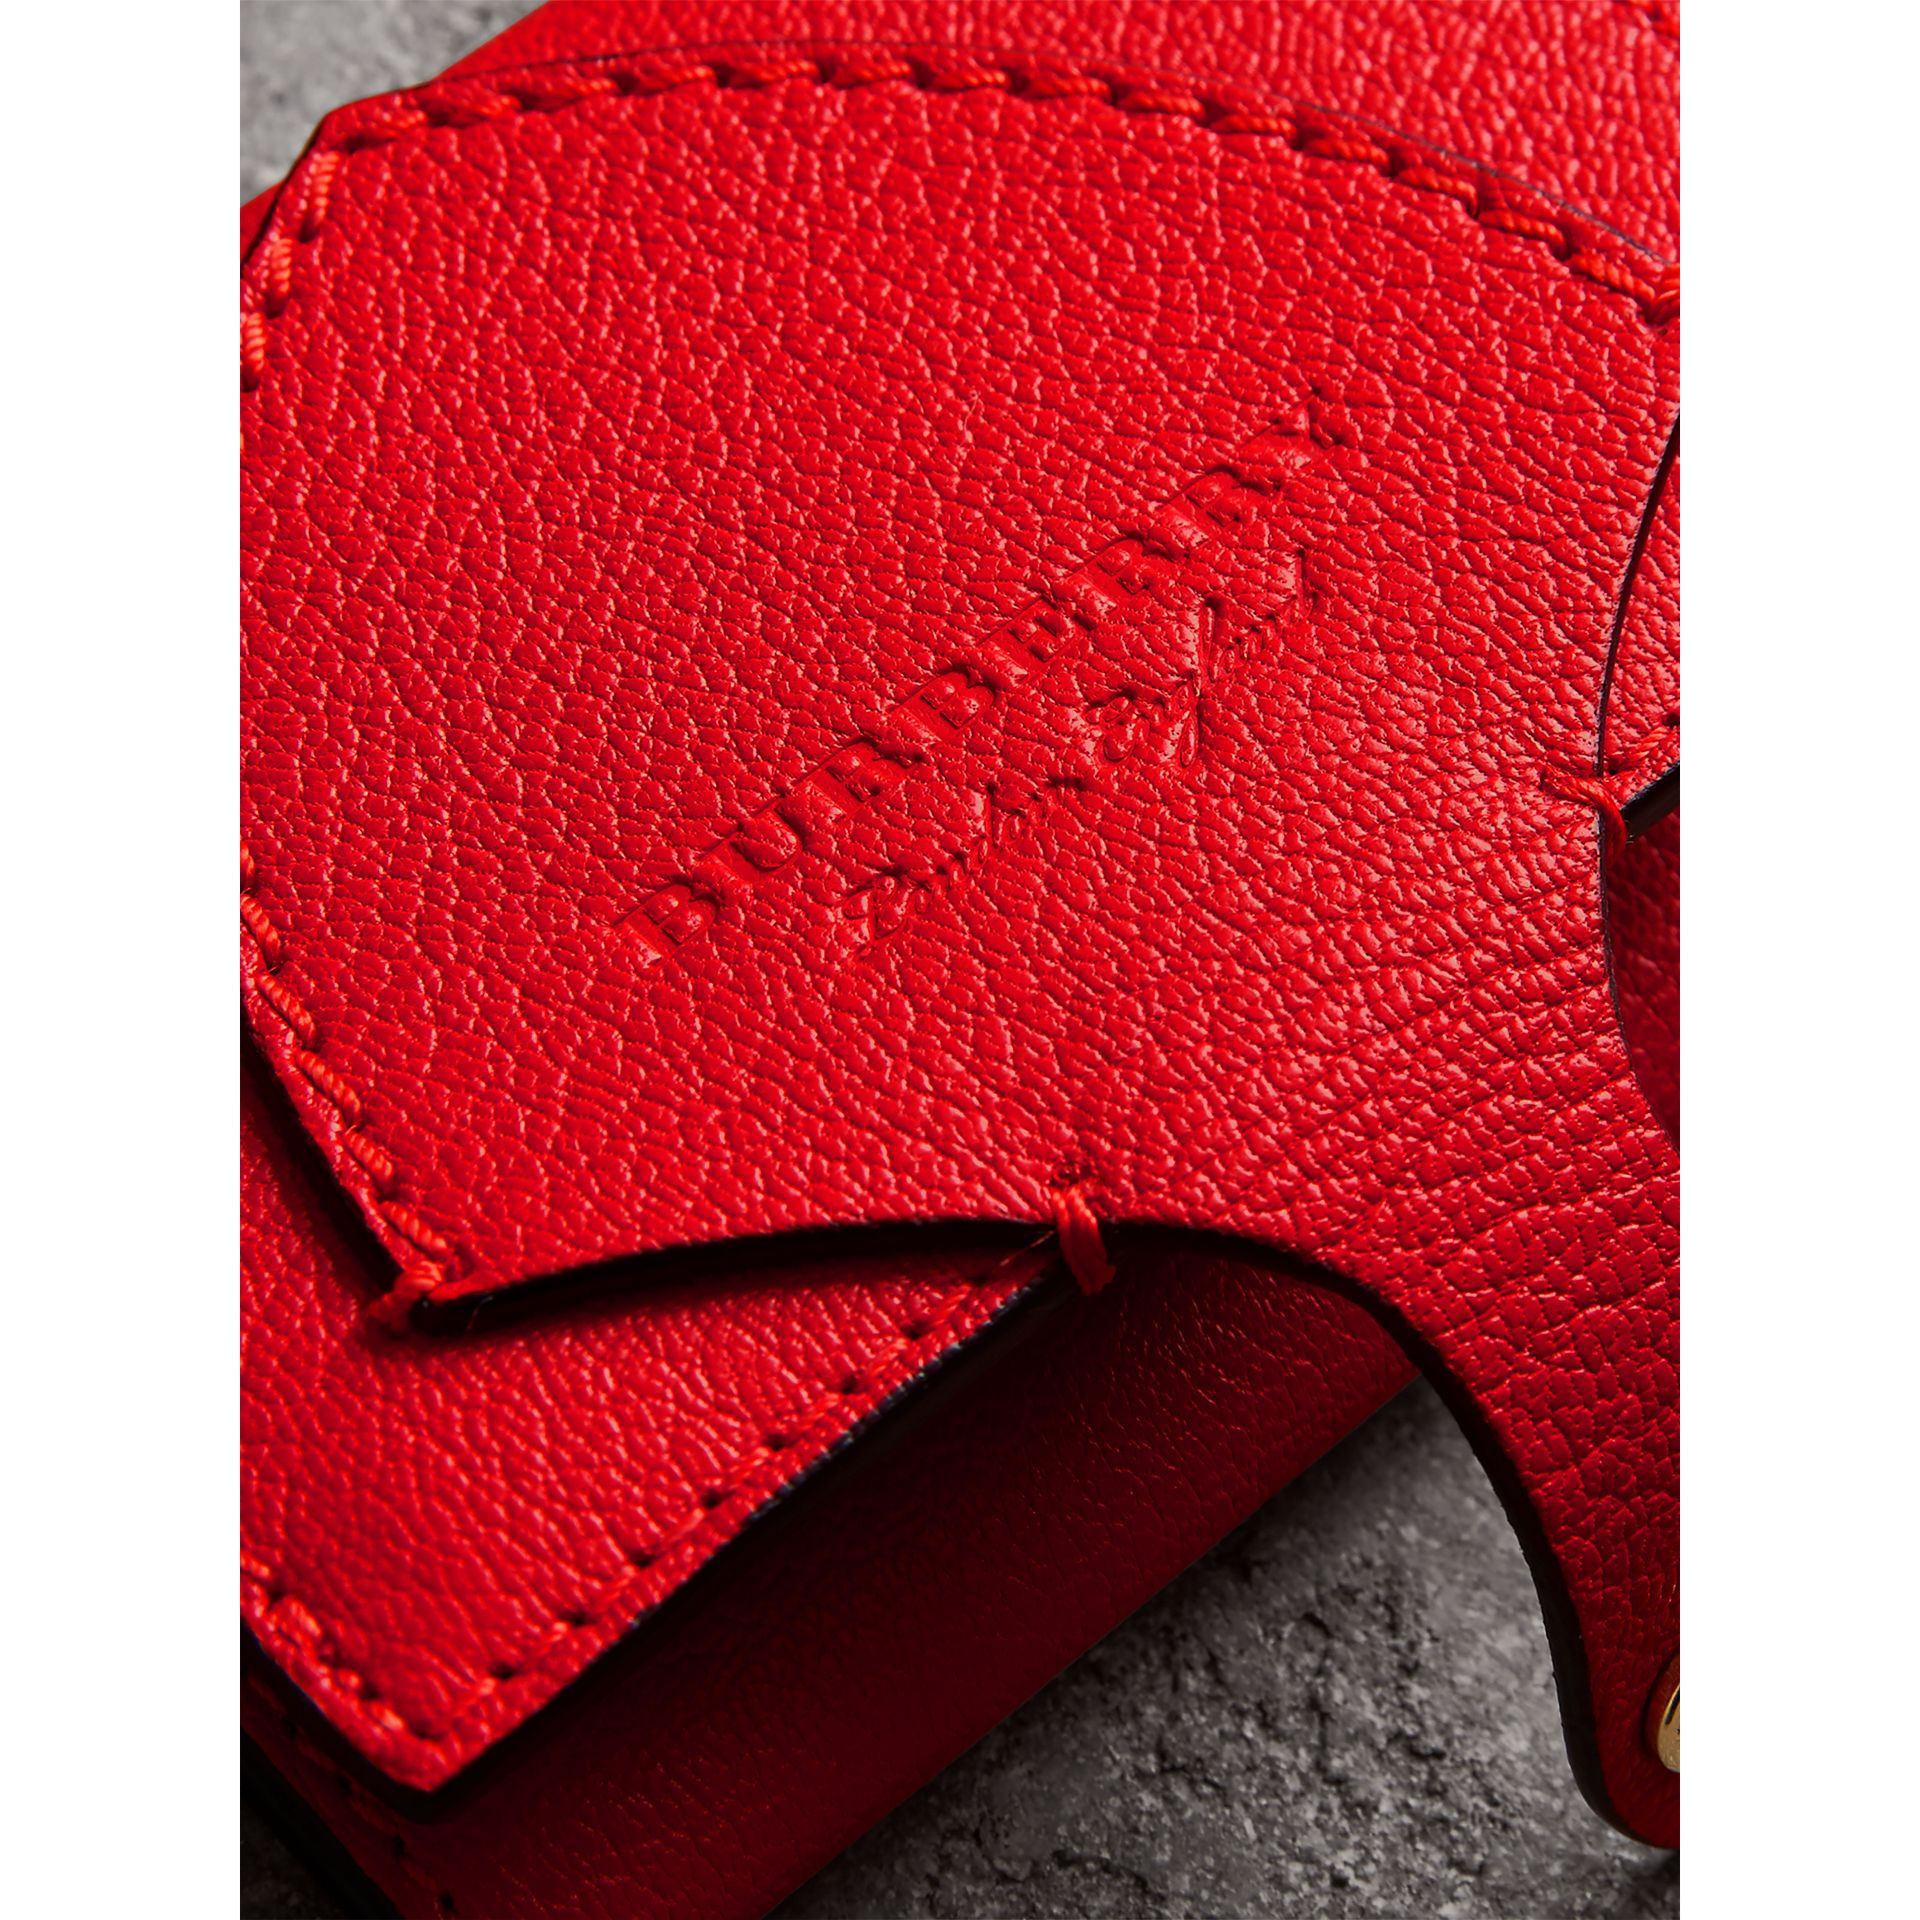 Equestrian Shield Two-tone Leather Folding Wallet in Bright Red - Women | Burberry United Kingdom - gallery image 1